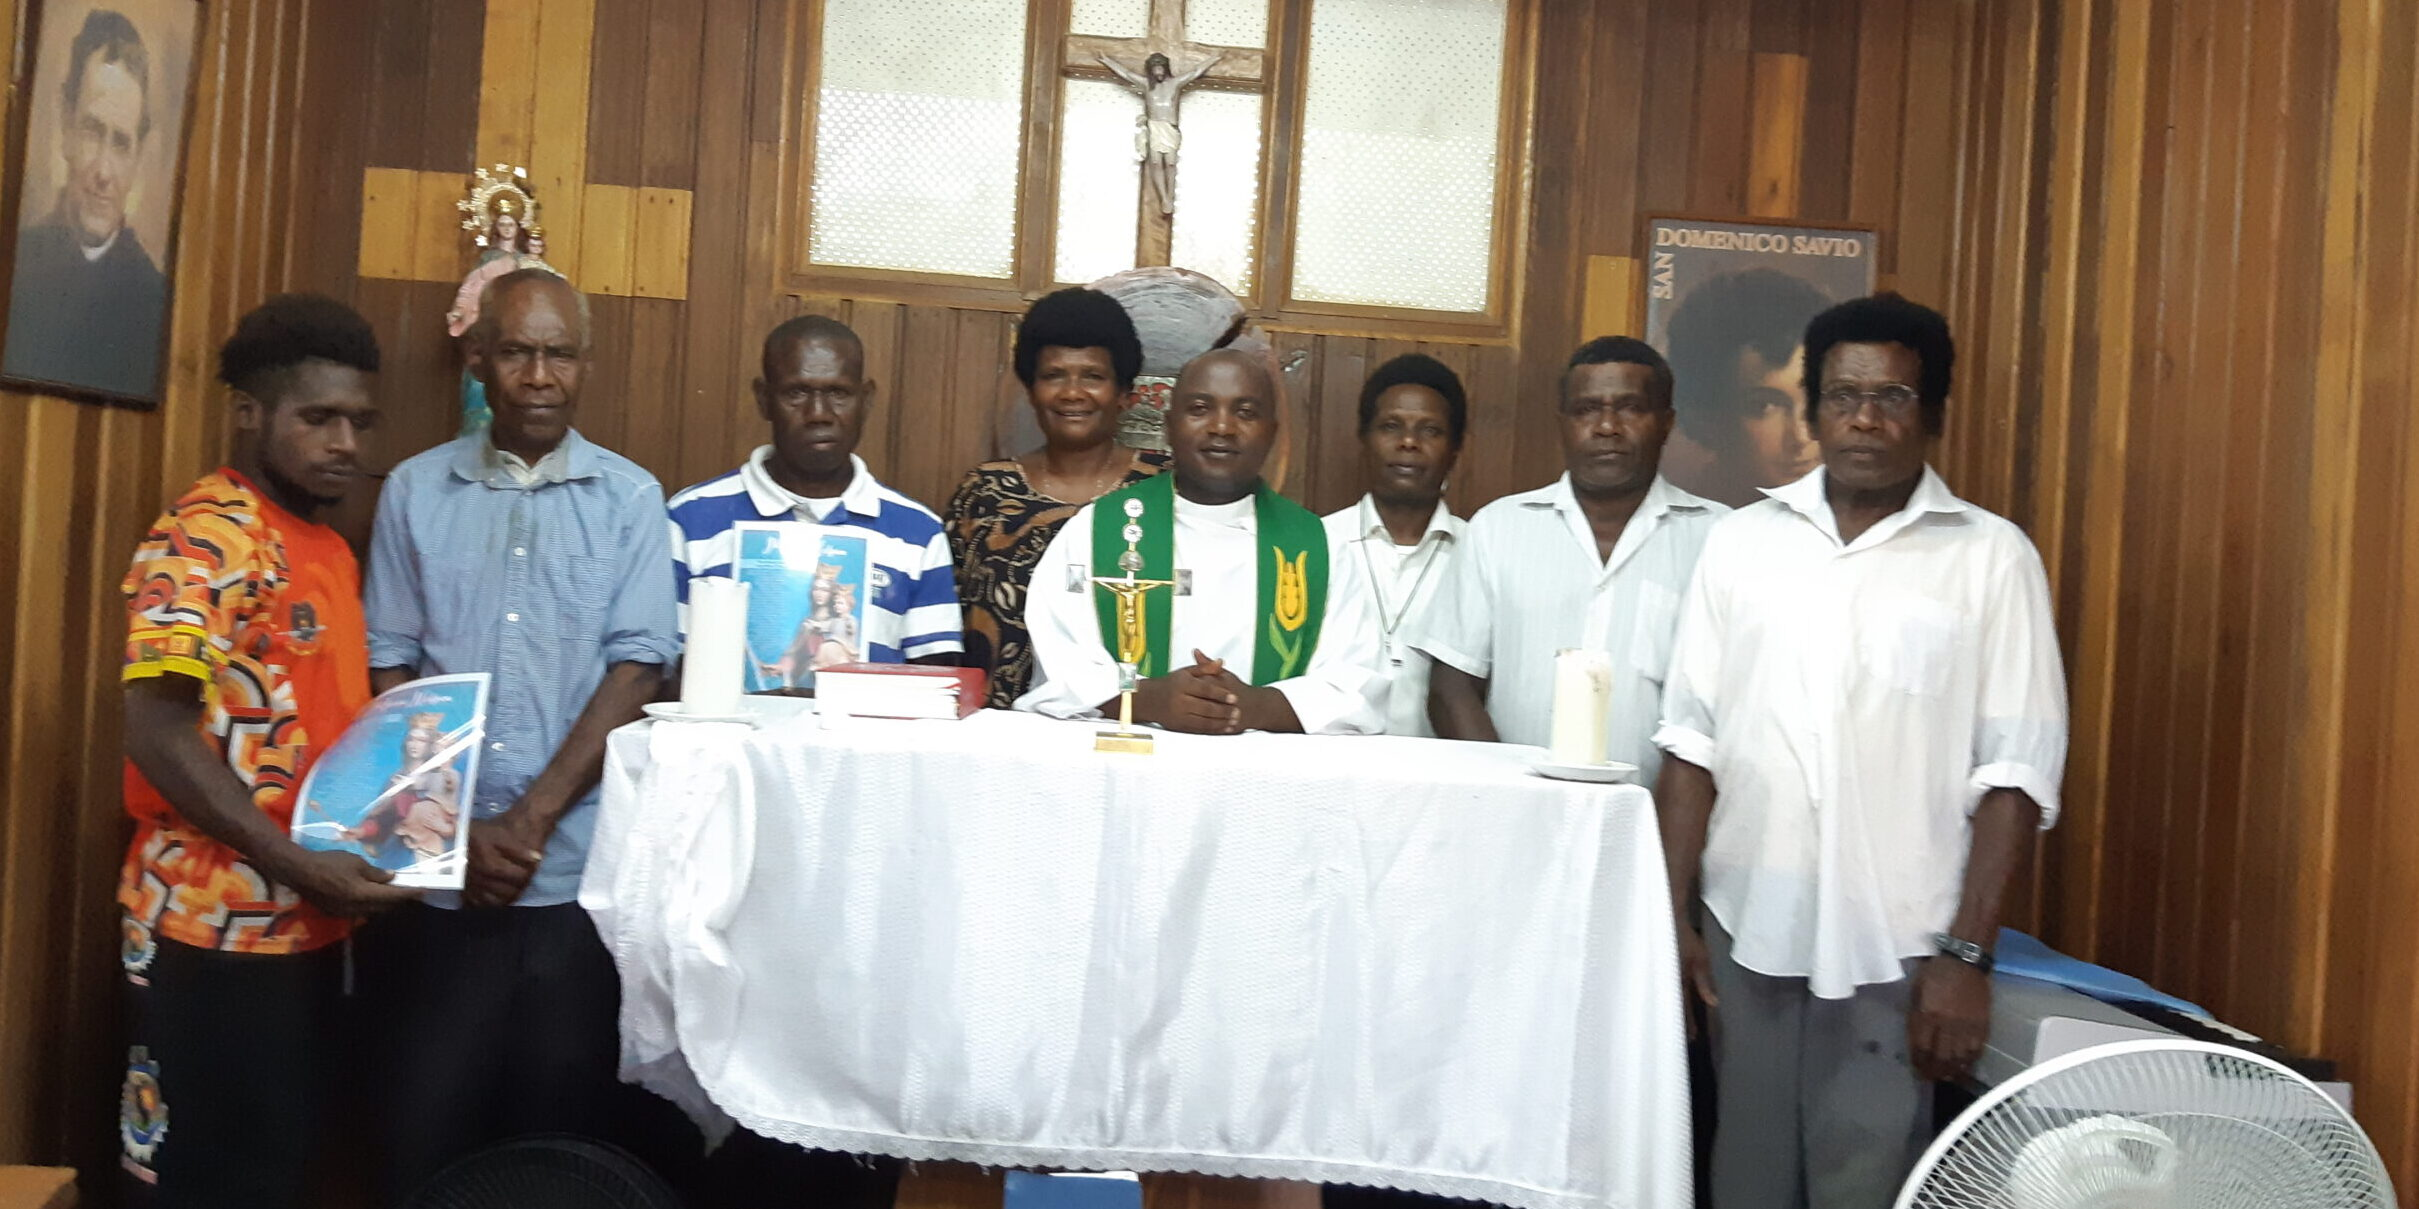 MHC Rapolo – Subsidy for the Catechists